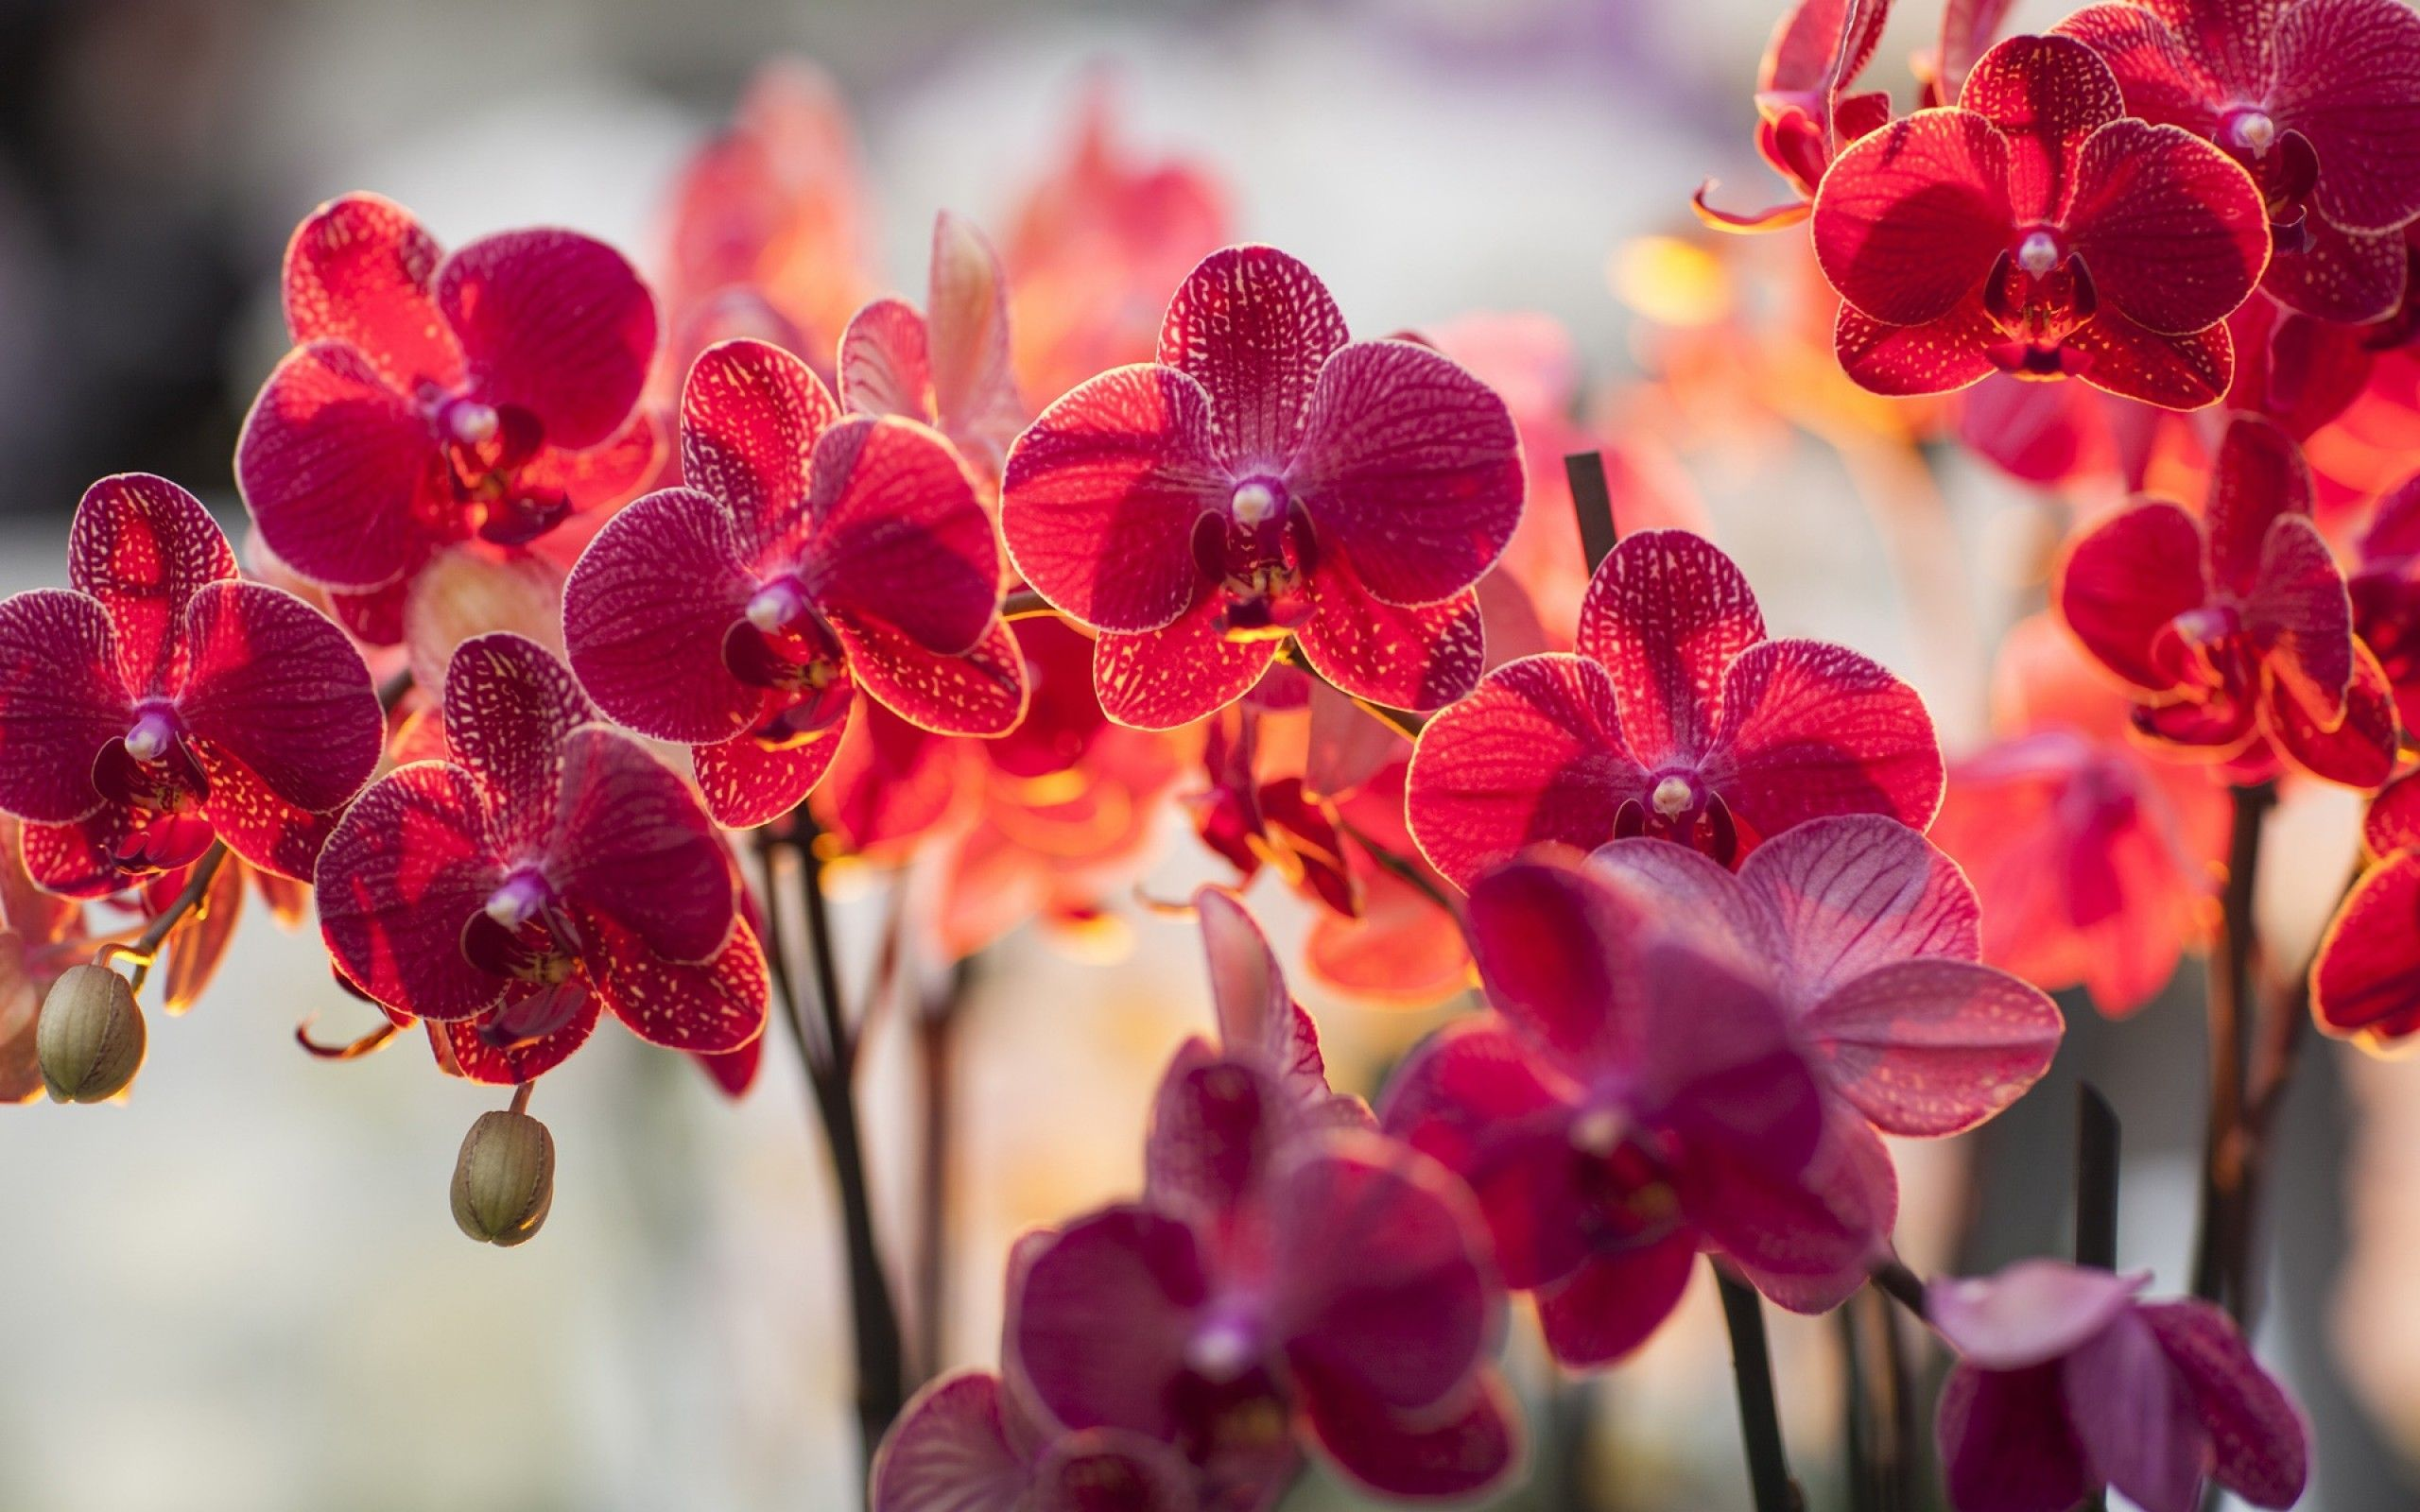 Phalaenopsis Orchid Flowers Google Search Orchid Wallpaper Orchids Red Orchids